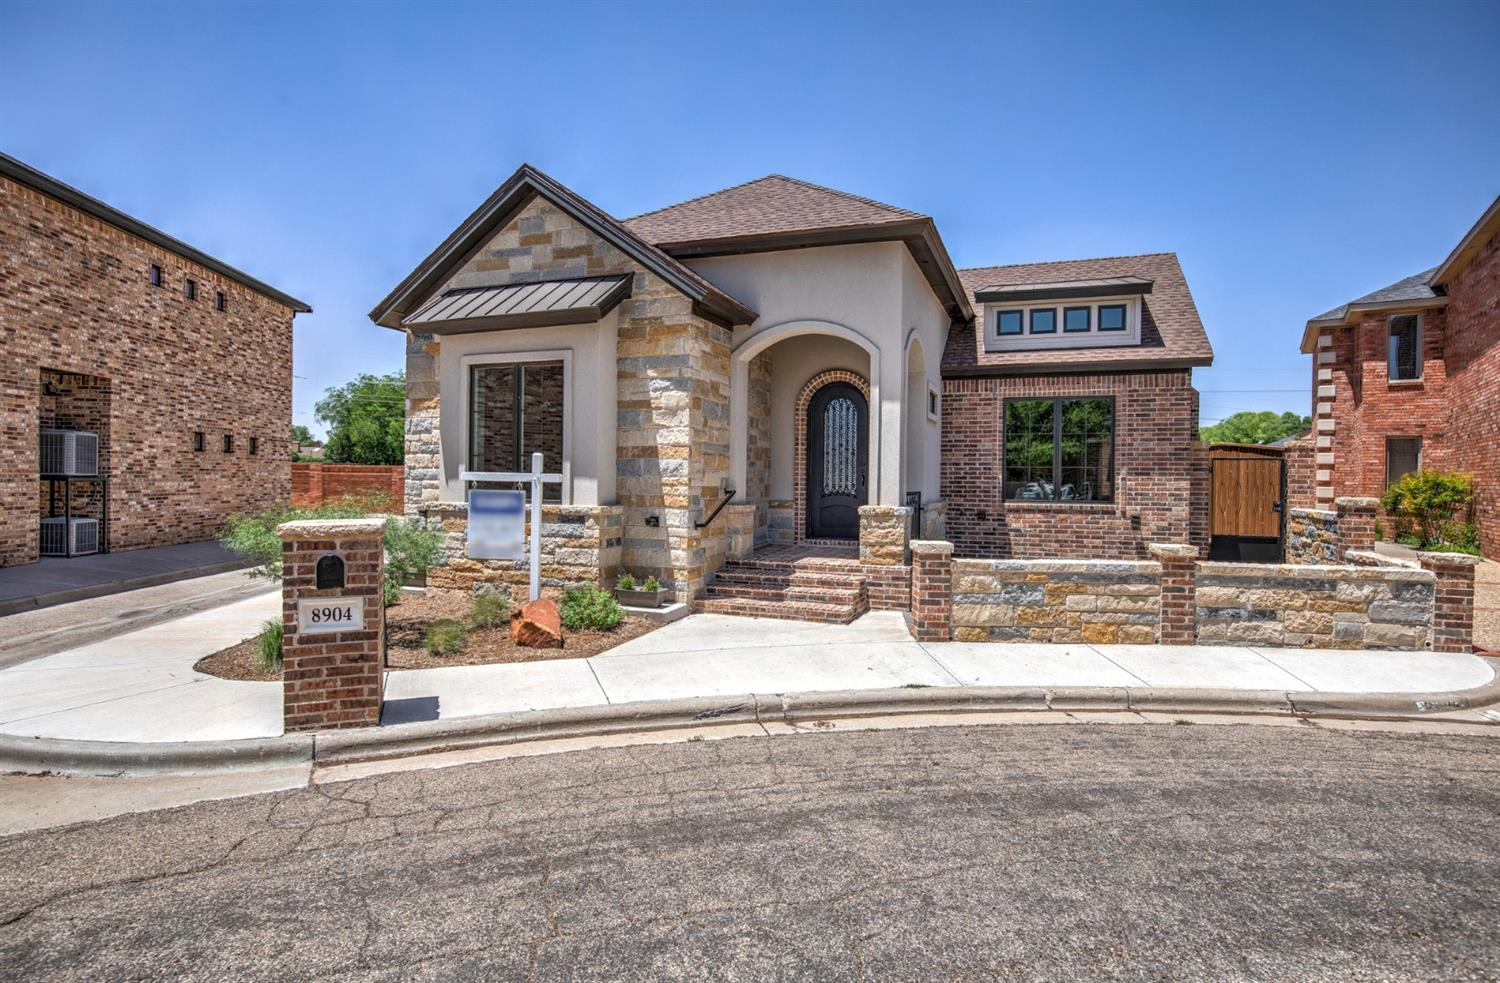 Tucked away in a serene cul-de-sac near the #6 hole of Lakeridge Country Club. The Fairways of Lakeridge Estates. Newly built 4/3/3 Larry Driskill garden home with open plan and low maintenance yard. Amenities are high-end and timeless. Dramatically beautiful stacked stone fireplace leads your eyes up to the vaulted ceiling. Breathtaking kitchen features: 5 burner gas cooktop, custom cabinetry, stunning granite, custom hood vent, double oven, and huge walnut island. Bright Pella windows flood this stunner with natural light. Incredible carpentry throughout! Exquisite back patio has outdoor kitchen and fireplace-perfect for entertaining & relaxing. Luxurious spa-like master suite has a safe room and dream closet. Garage provides one side that is tandem=opportunity for workshop or hobby car. 10 year new home warranty. ResNet Certified Home. ABUNDANCE of Energy Saving Features!